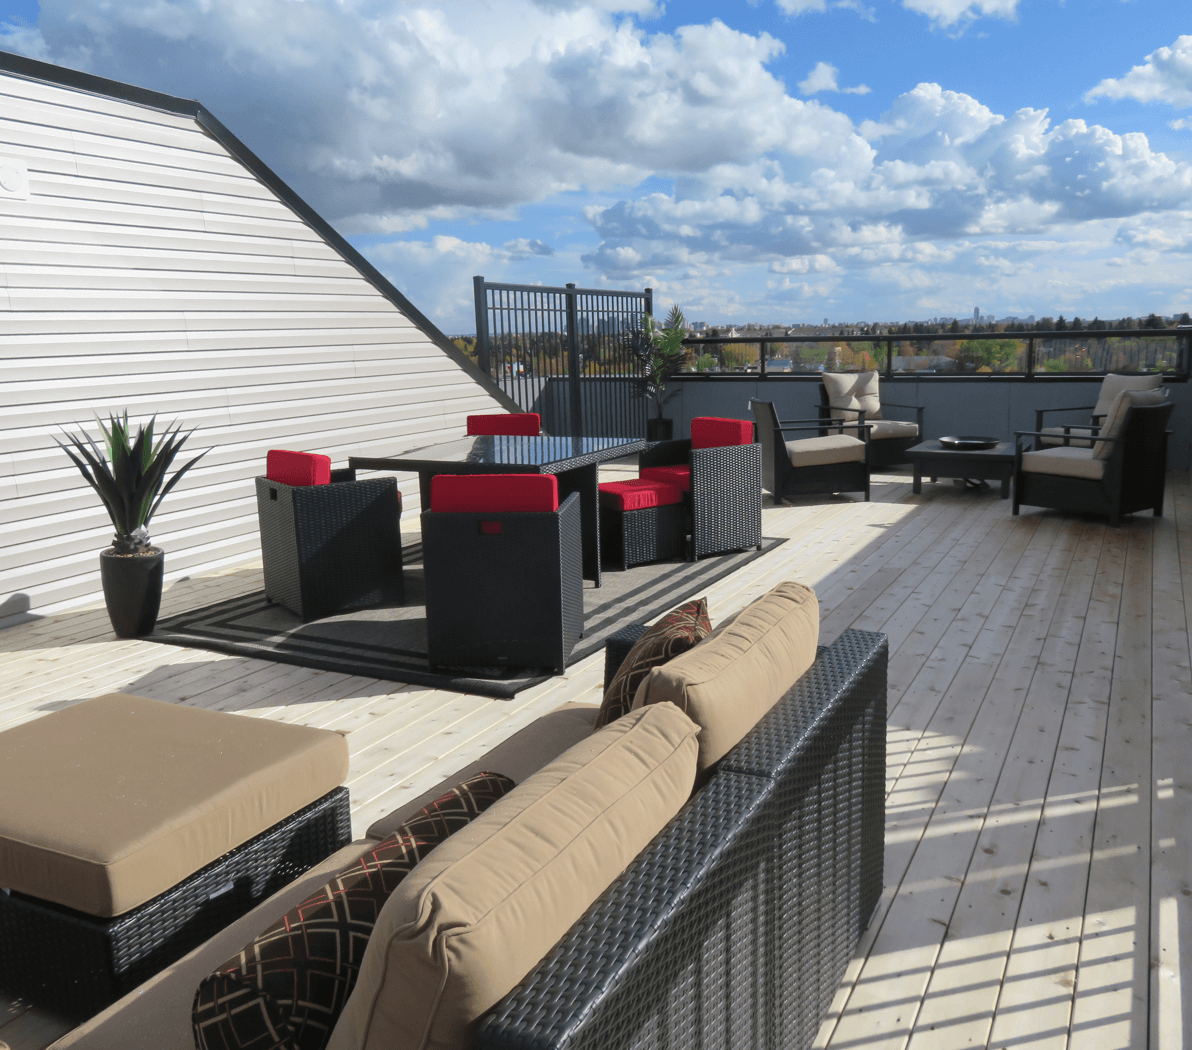 Condo Living 8 Amenities to Look Forward To Rooftop Image